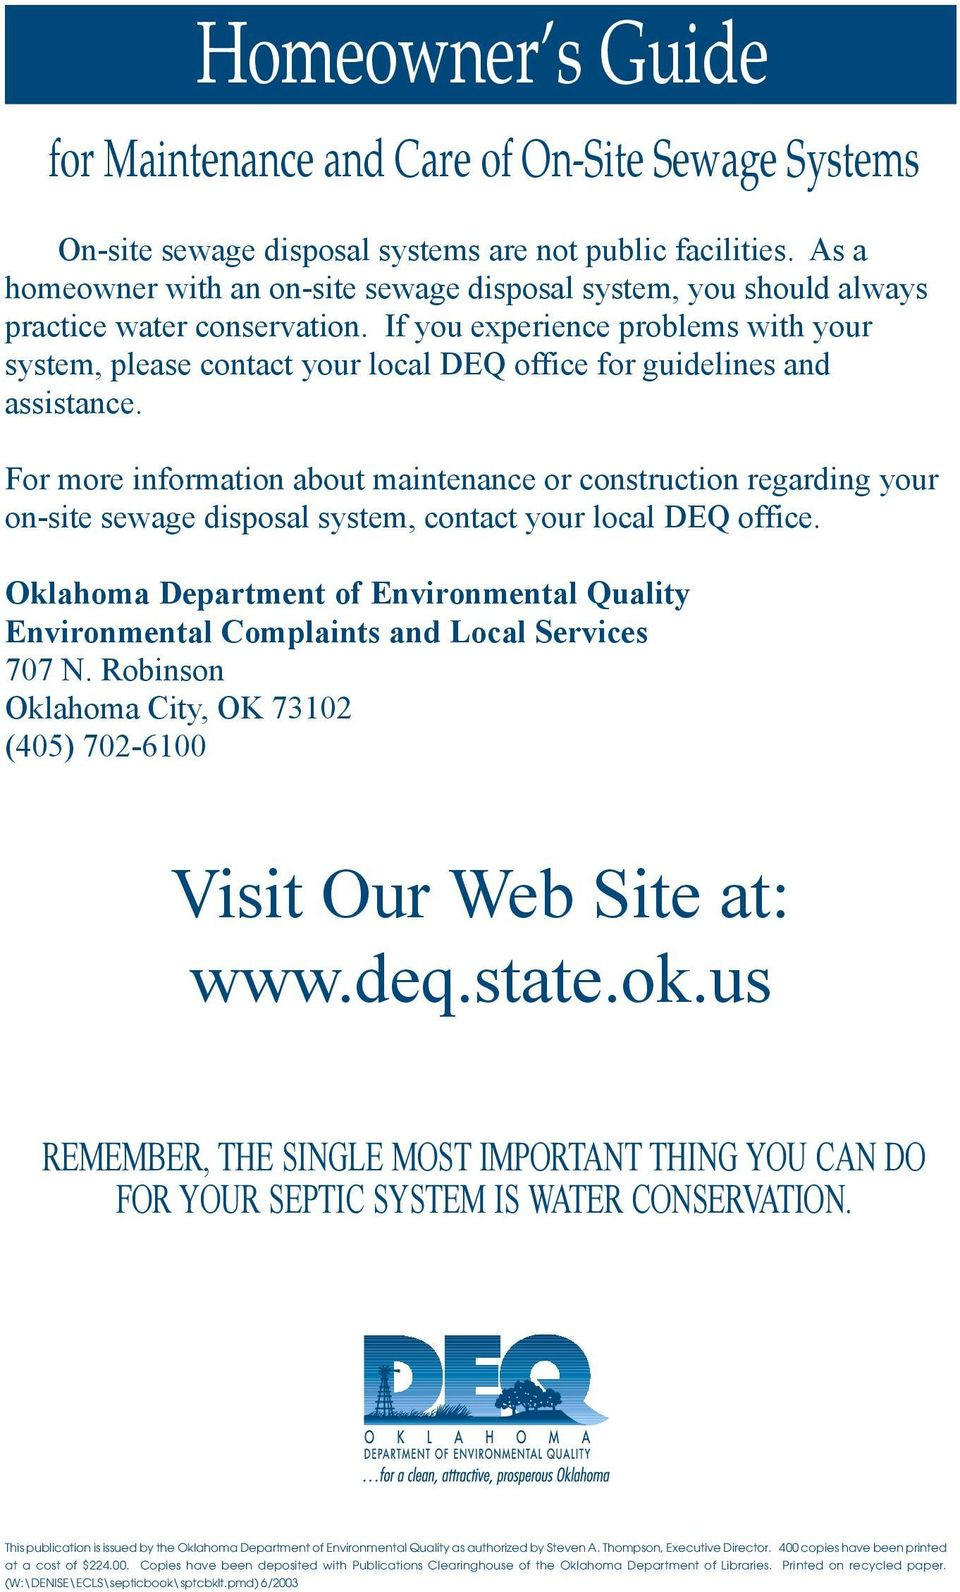 If you experience problems with your system, please contact your local DEQ office for guidelines and assistance.